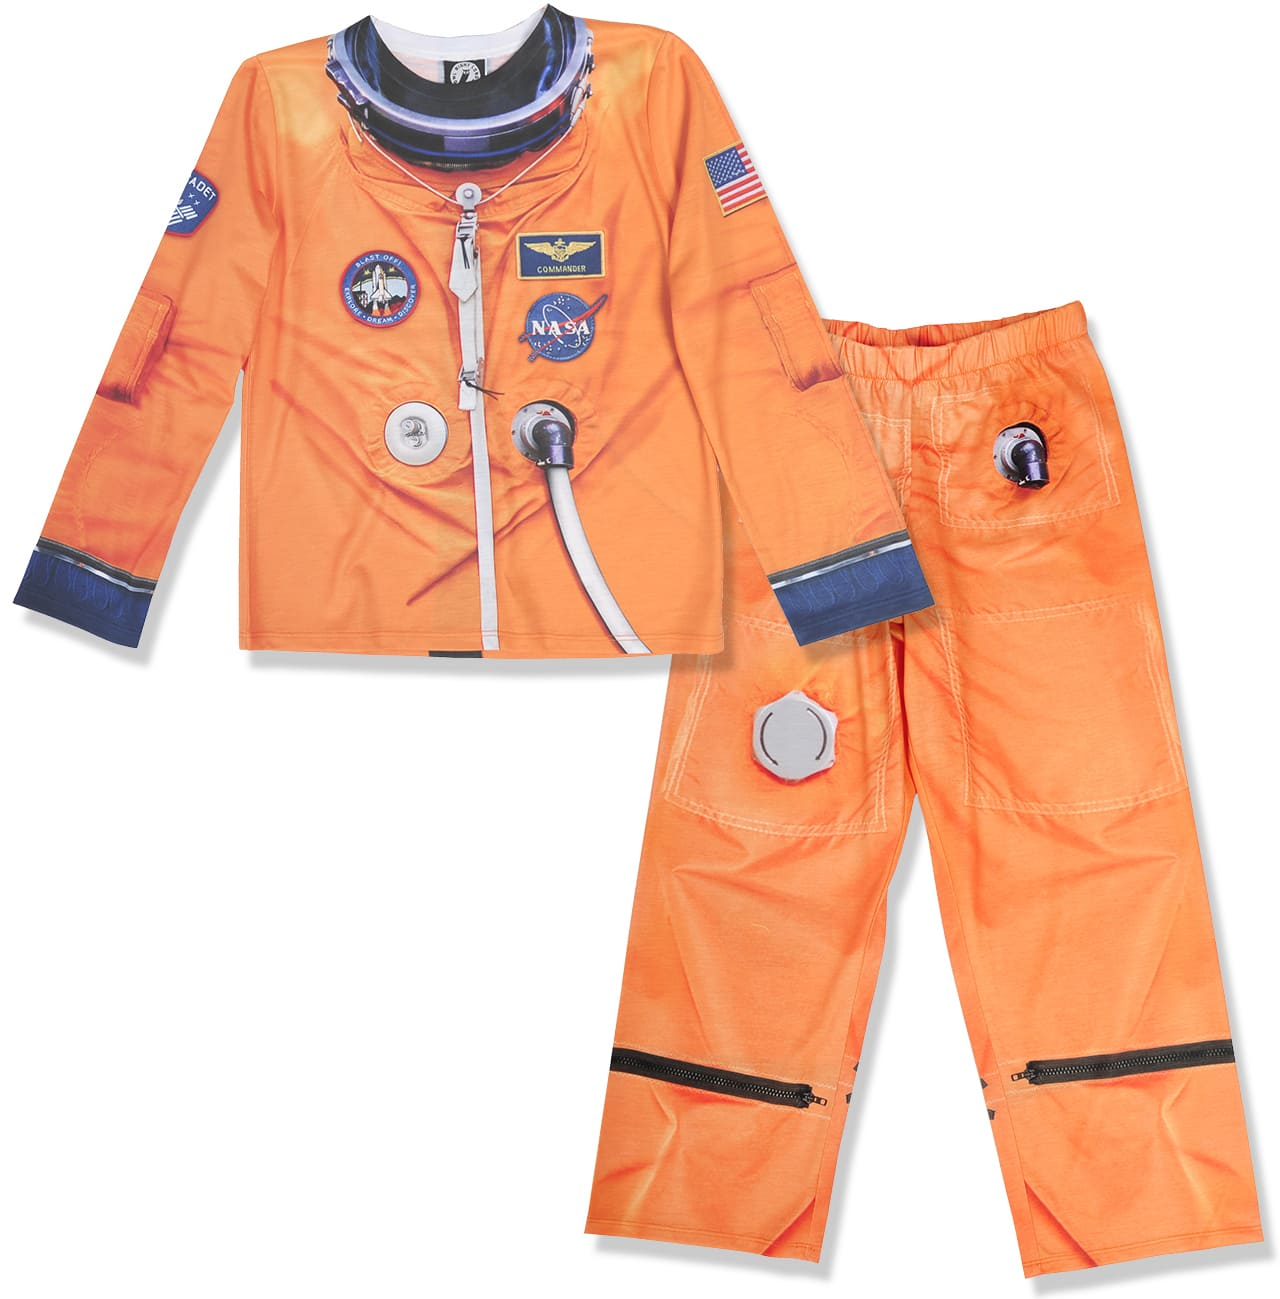 dbfa8ee67d28ea Costume Theme 2 Piece Pajama Sleep Set for Little & Big Boy's, $6 +  Shipping (Free over $35)